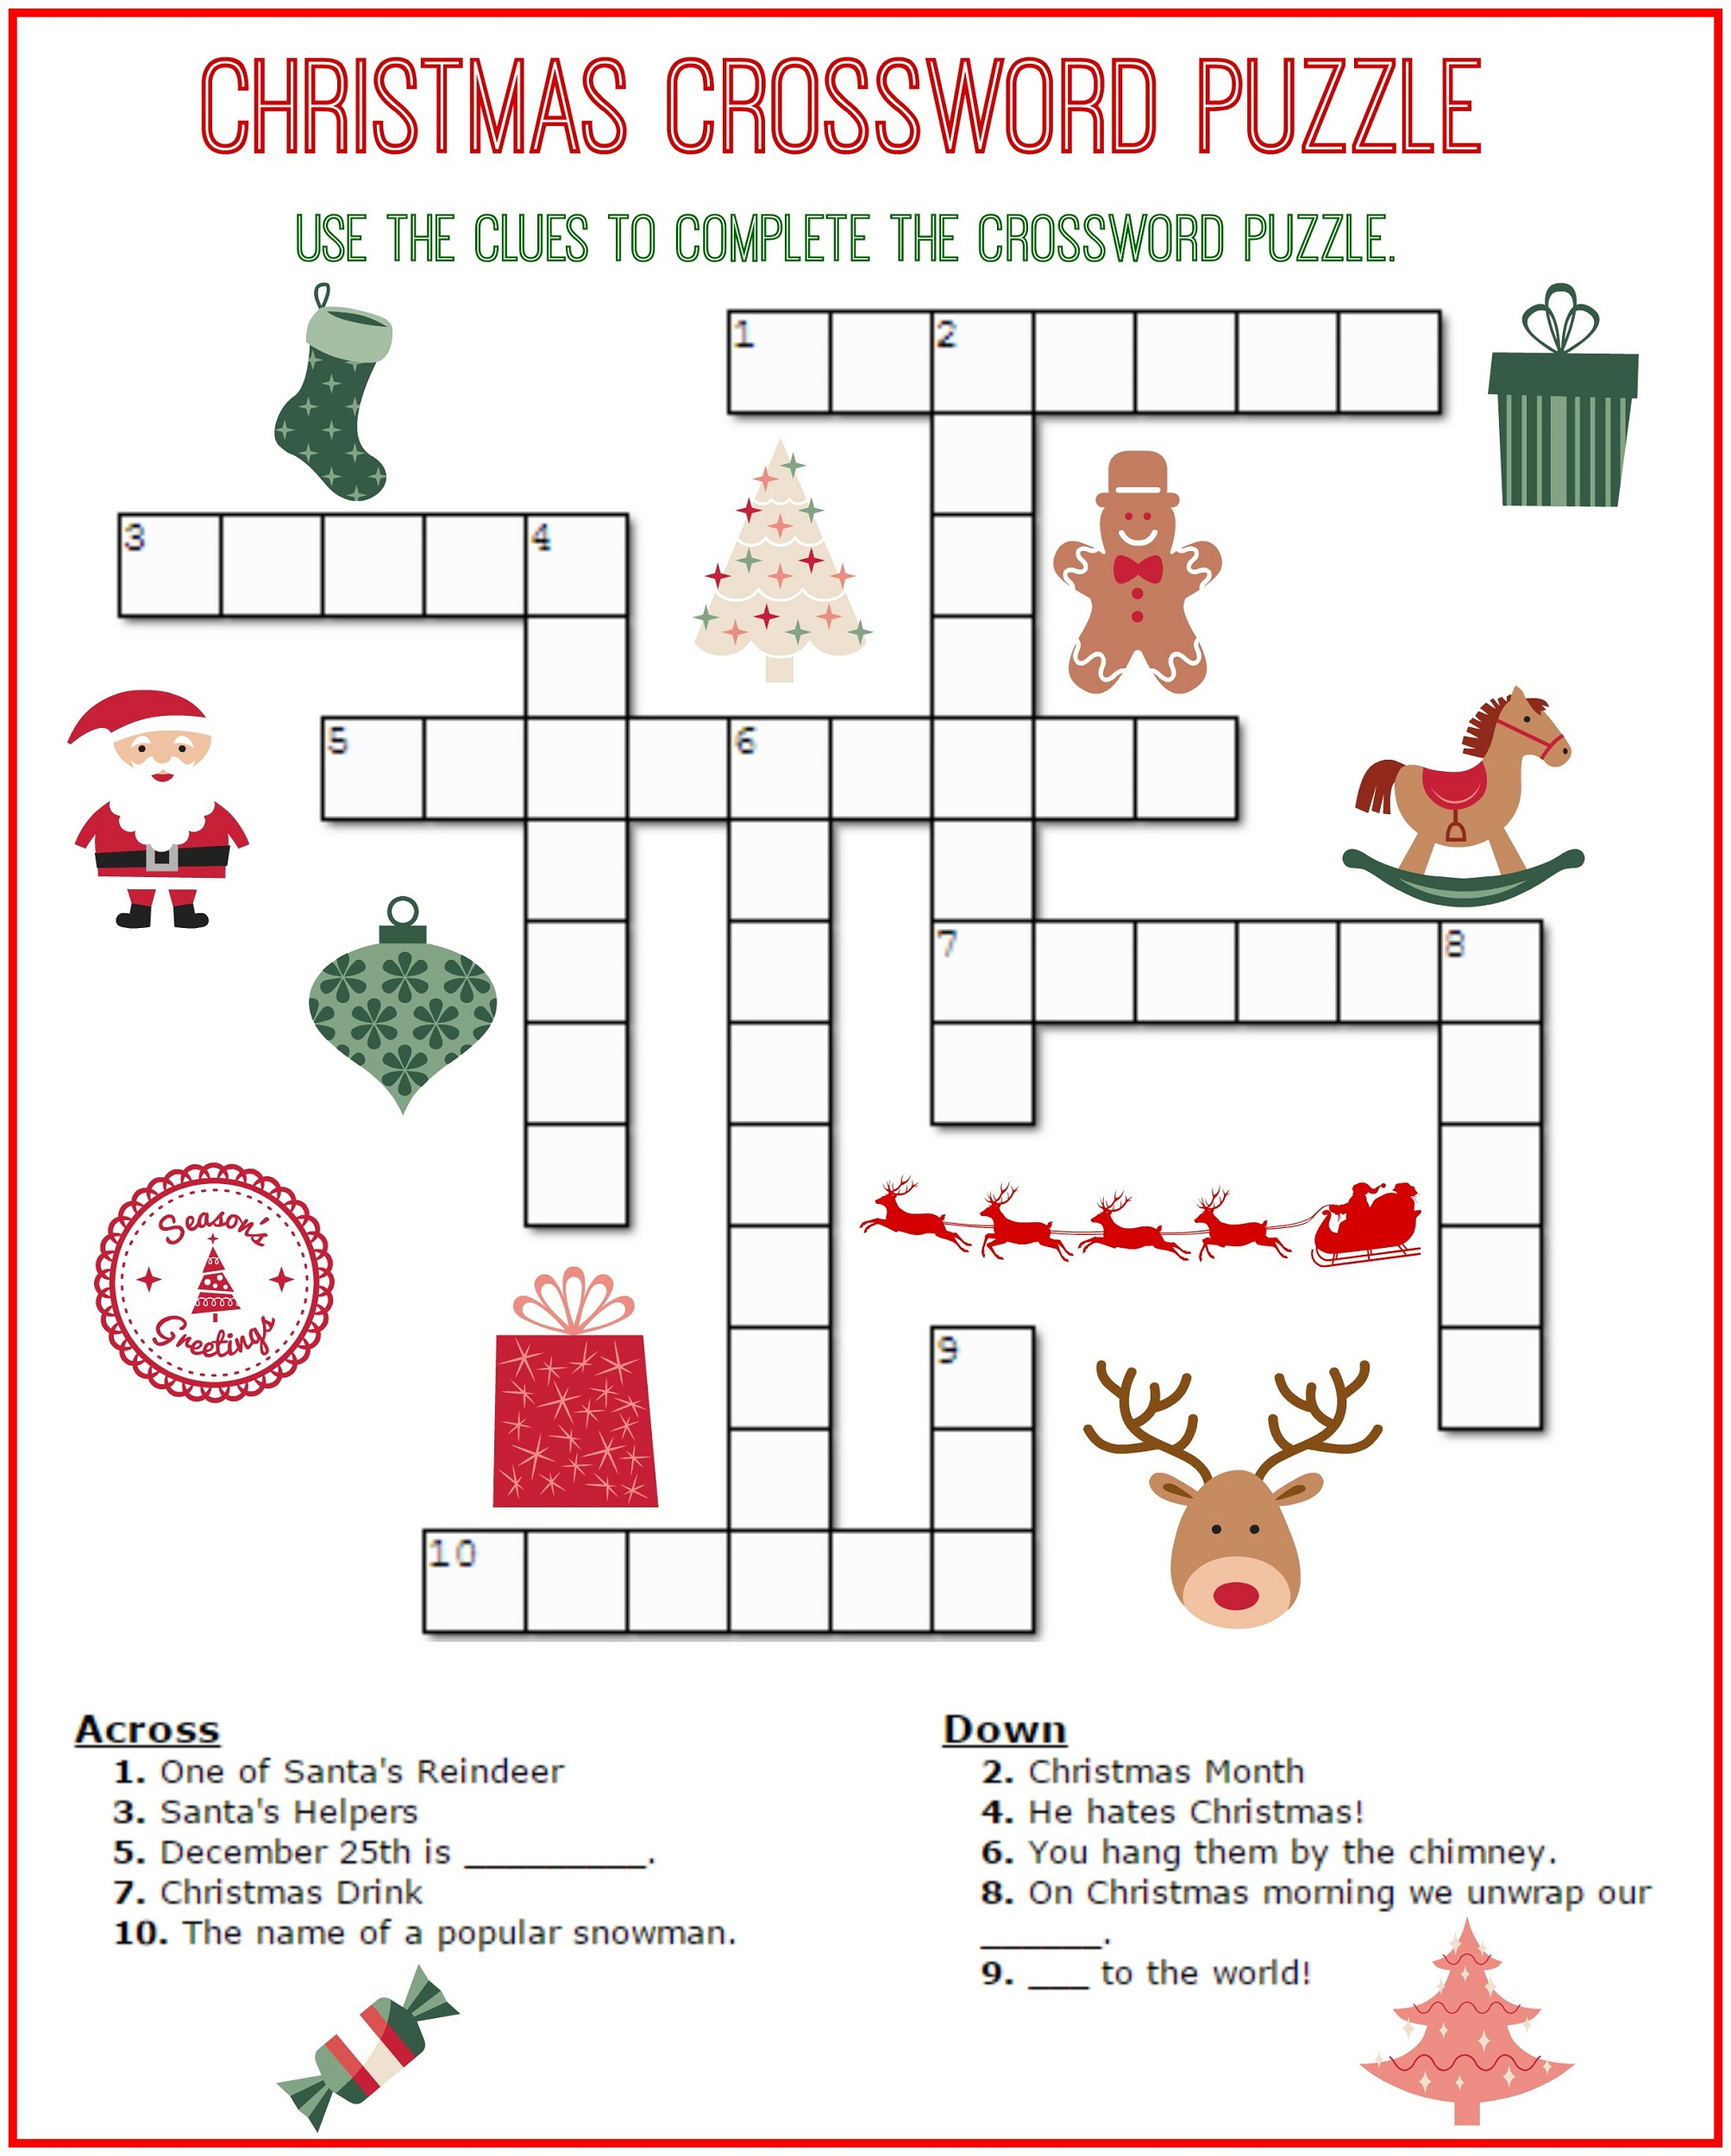 Crossword Puzzle Kids Printable 2017 | Kiddo Shelter - Printable Crossword Puzzles For Middle Schoolers